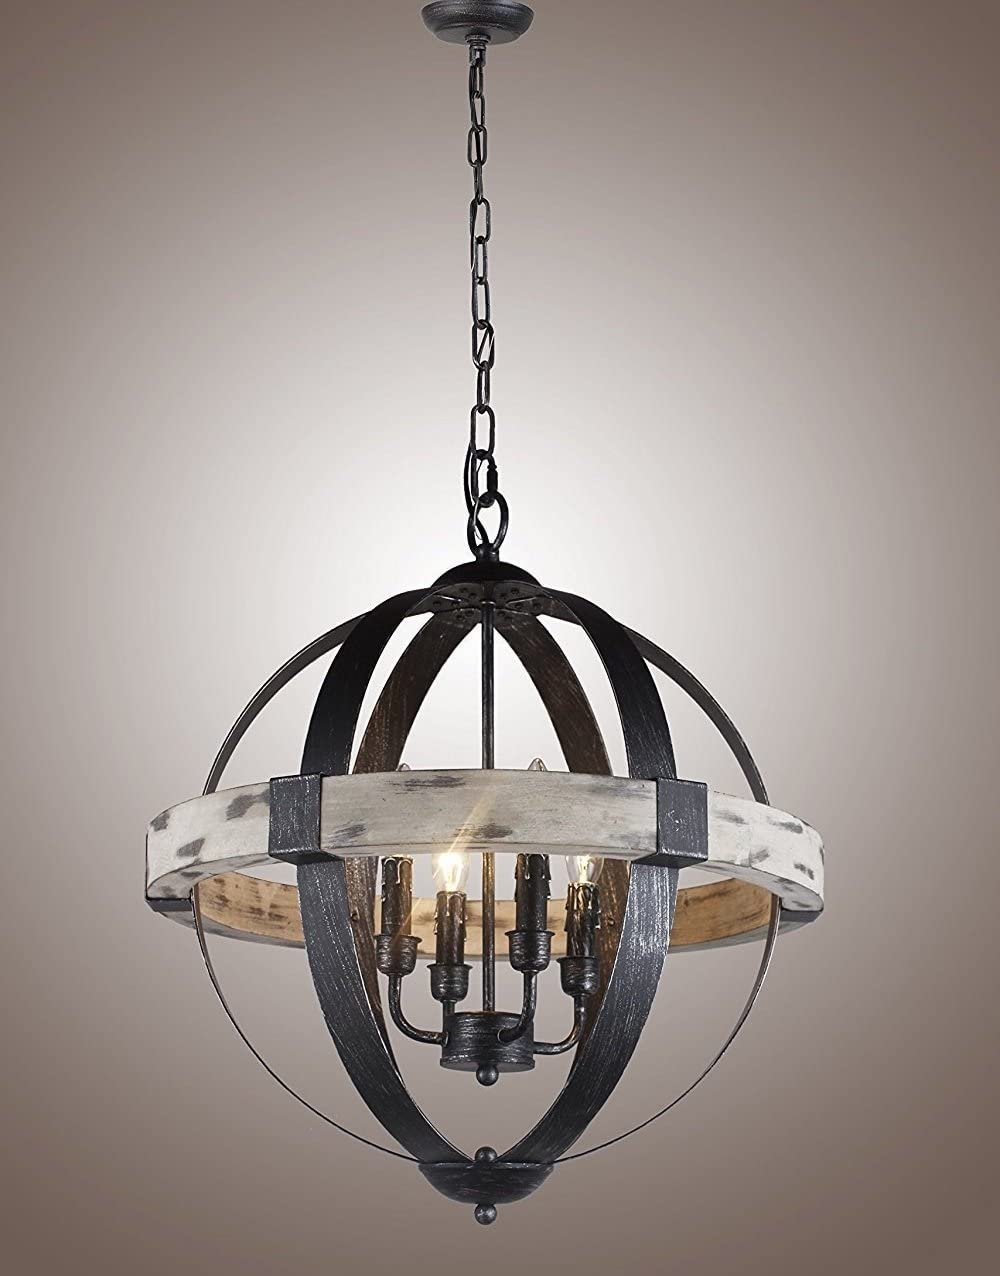 20 Wood Castello Black Aspen Wrought Iron Globe 4 Light Pendant Light Fixture Chandelier